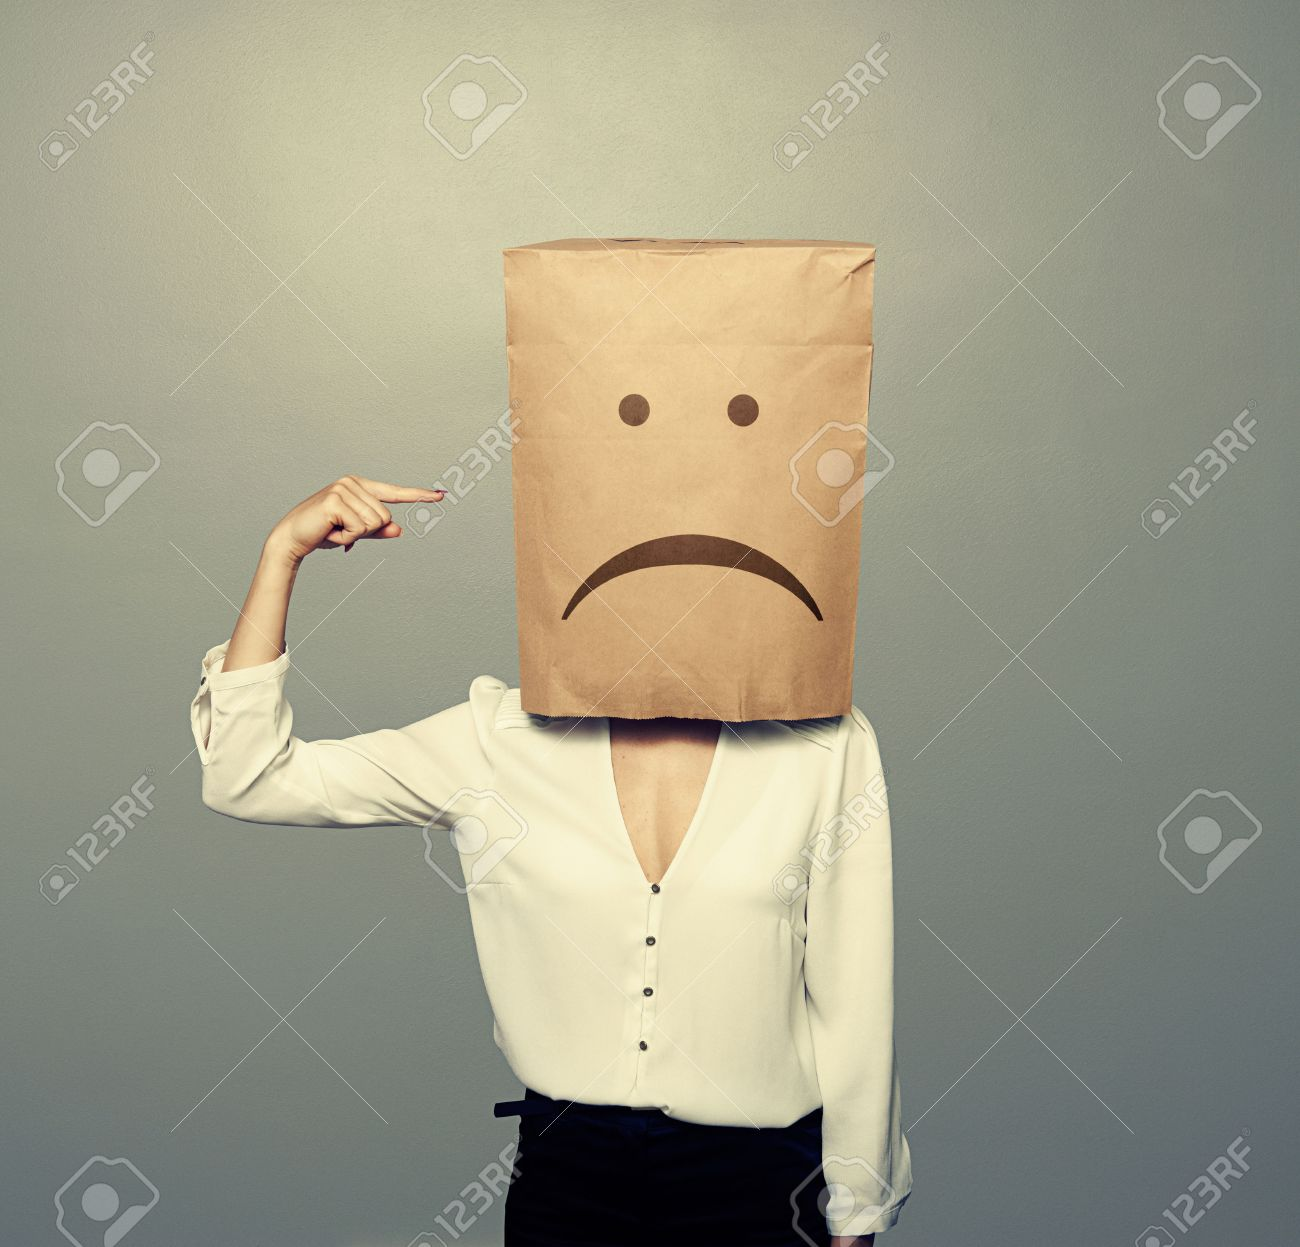 Image result for paper bag over head